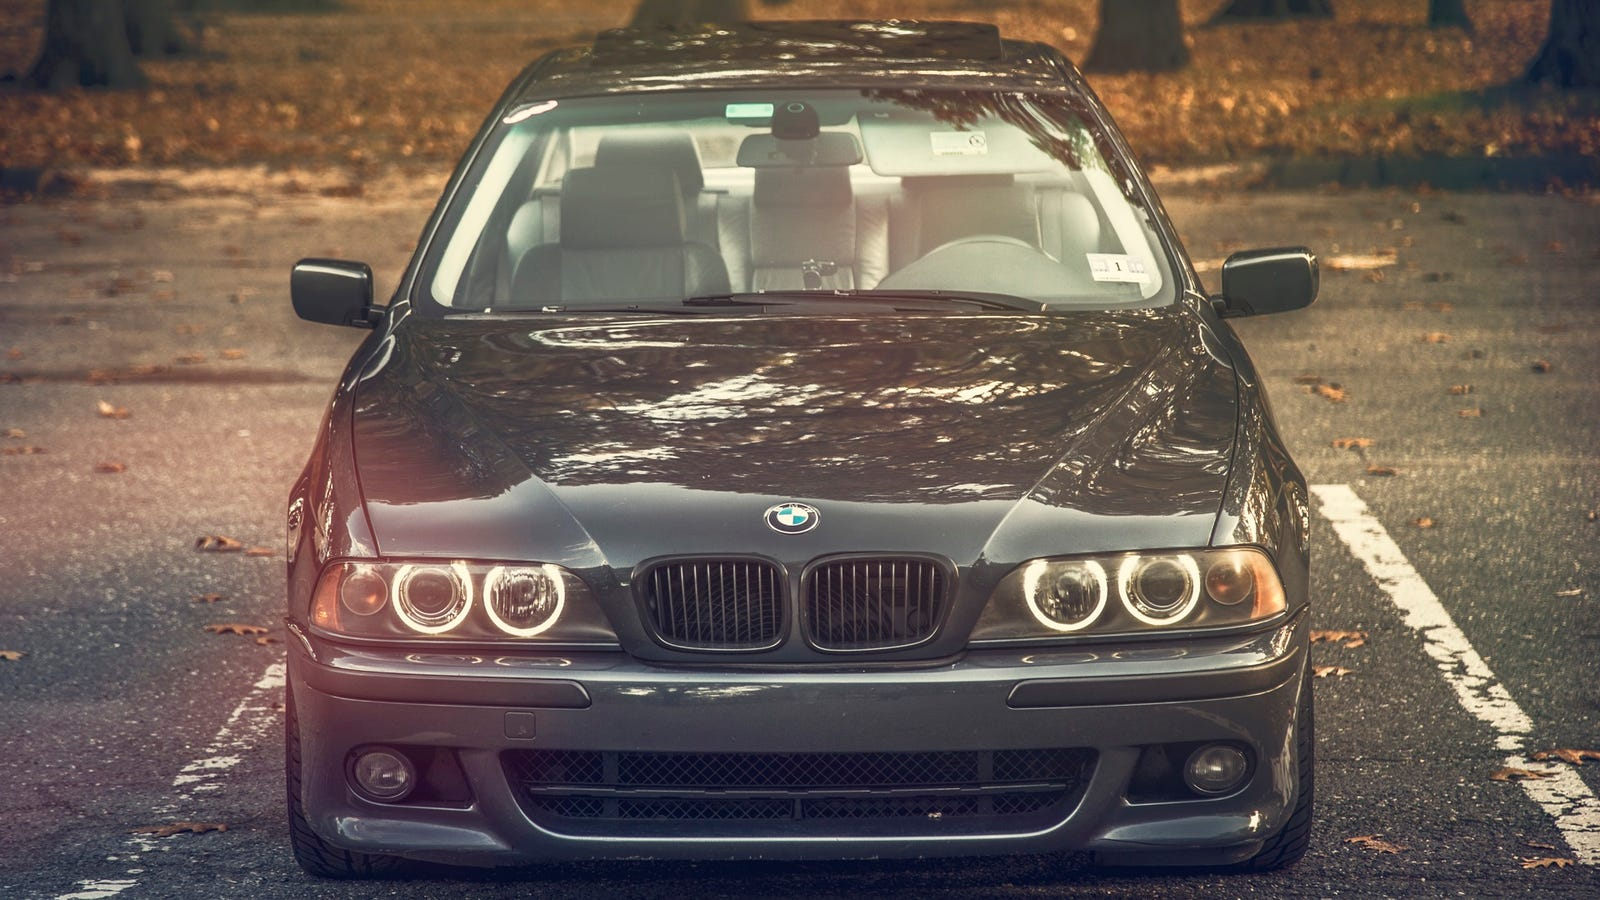 Coupe Series 2000 bmw 530i for sale Four Reasons Why You Need To Buy A BMW E39 540i Right Now